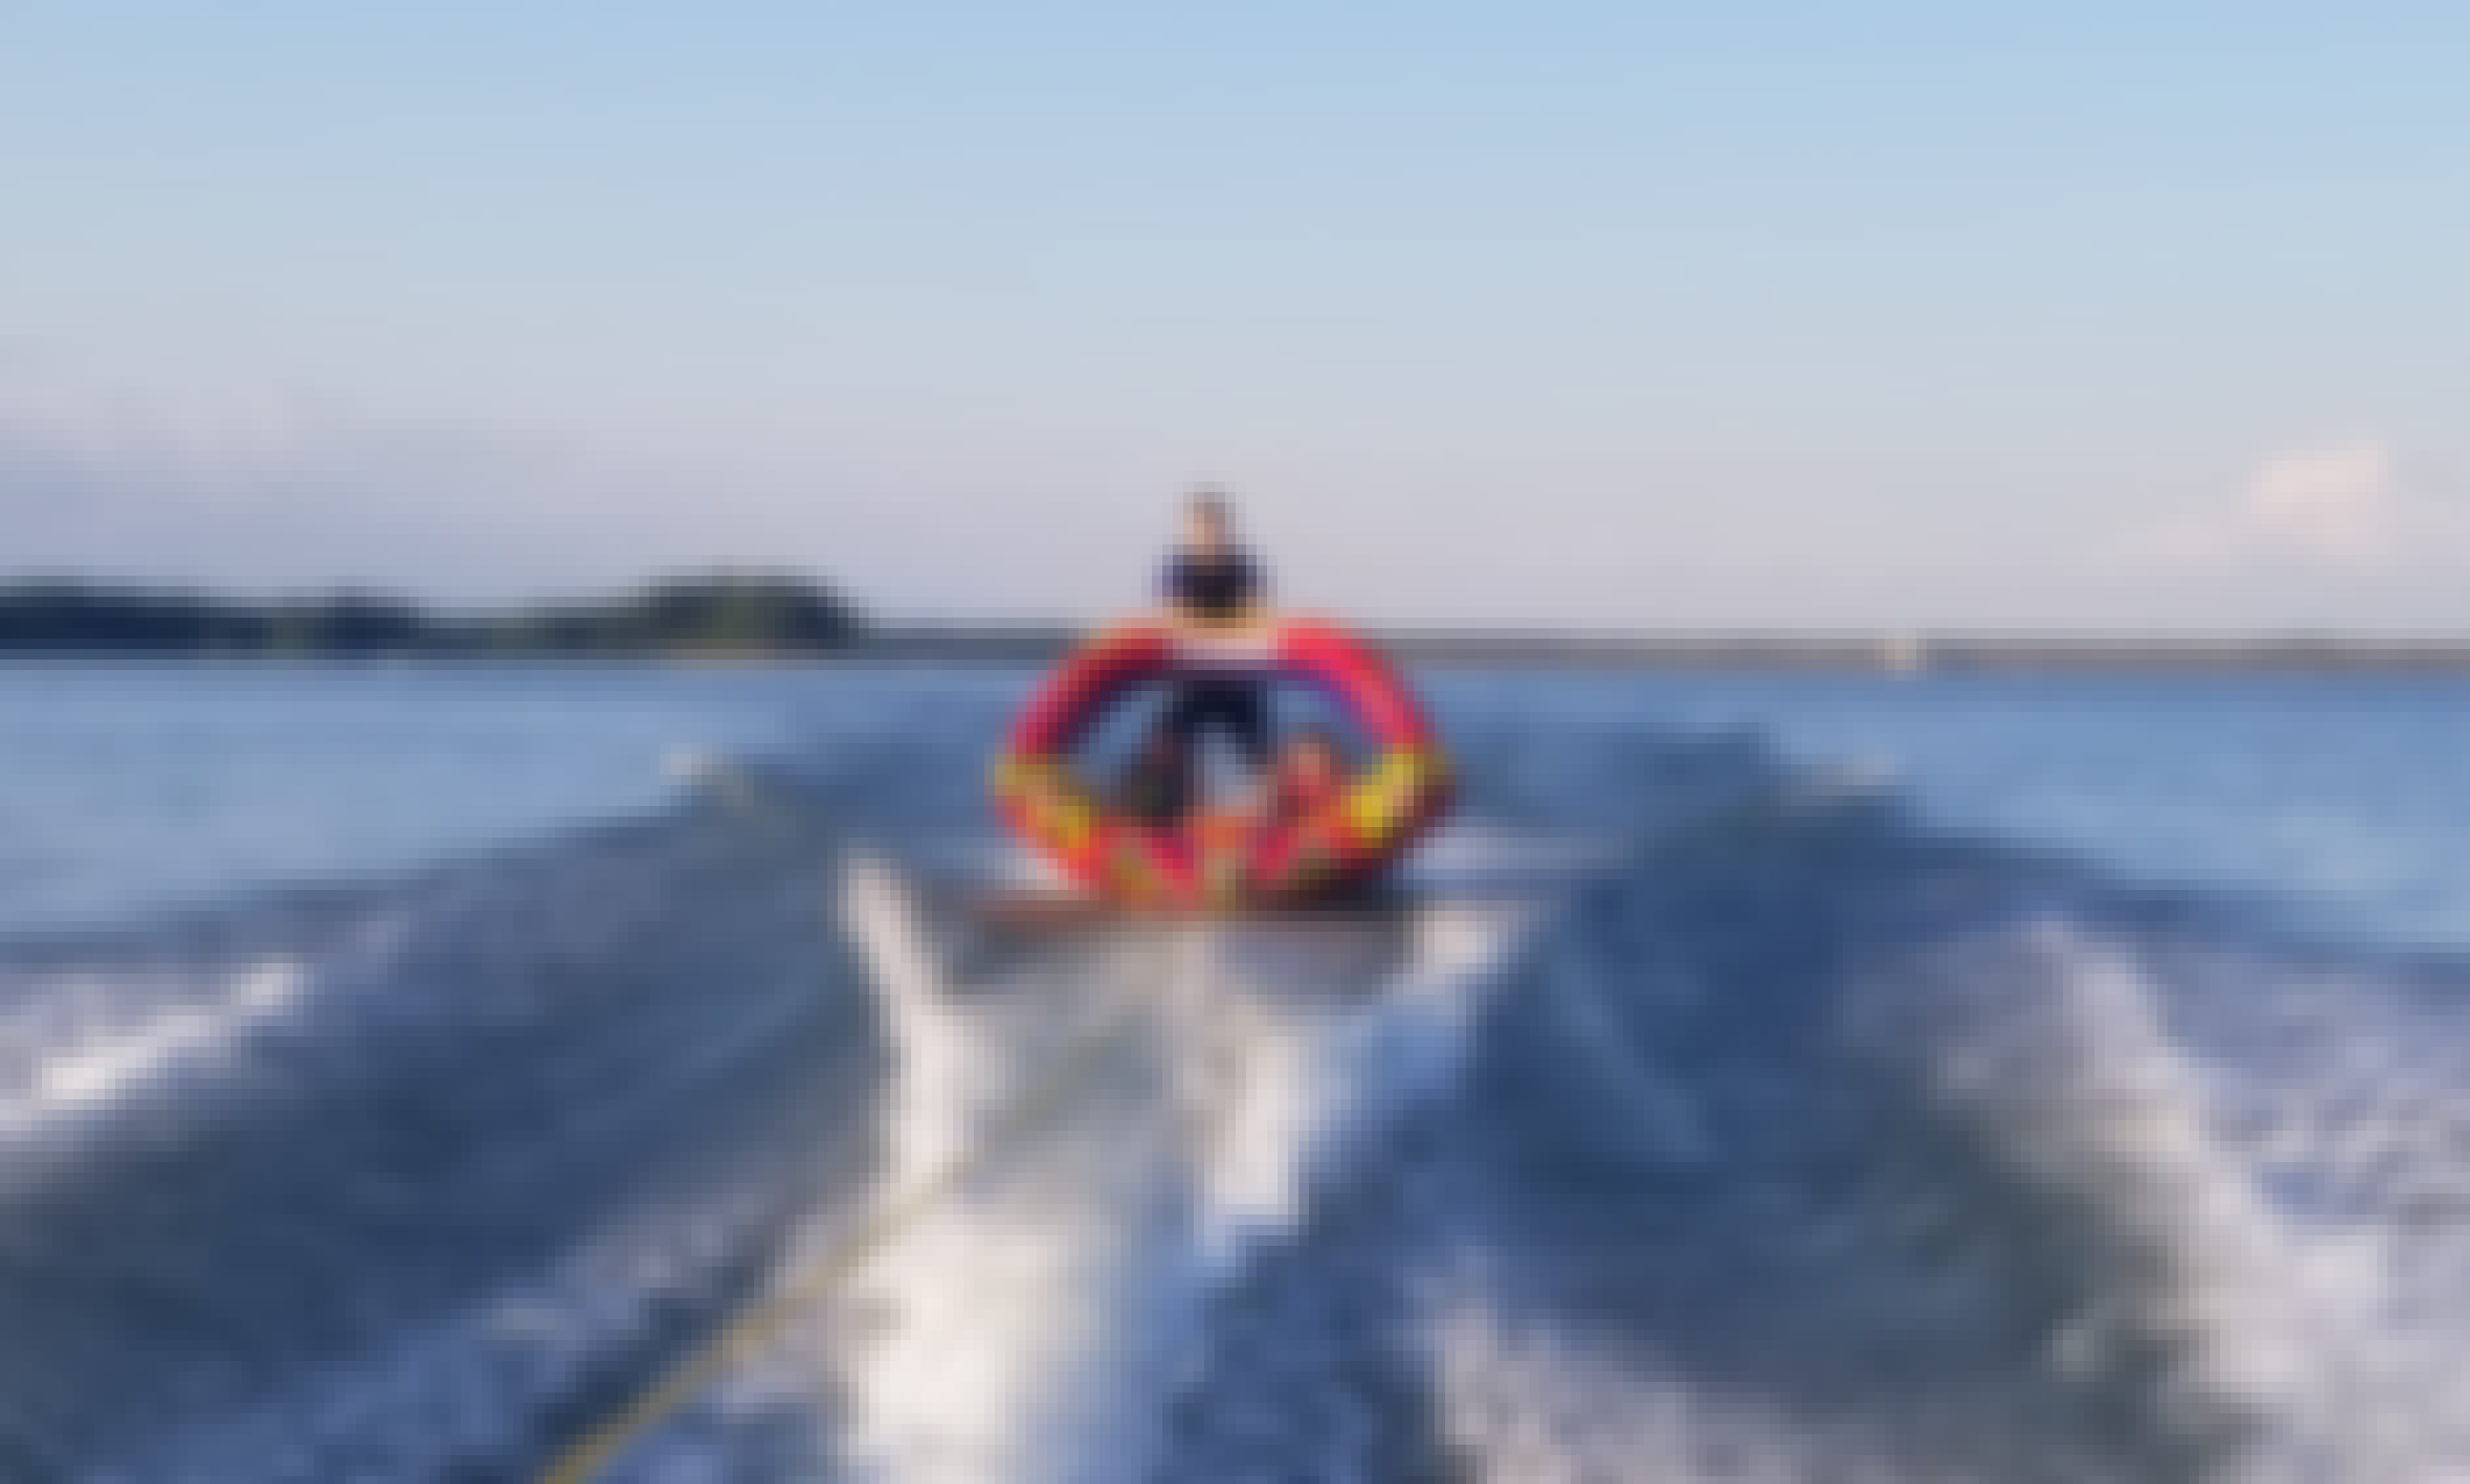 19' Maxum Bow-Rider for Tubing, Water Skiing, and Family Fun in the Sun!